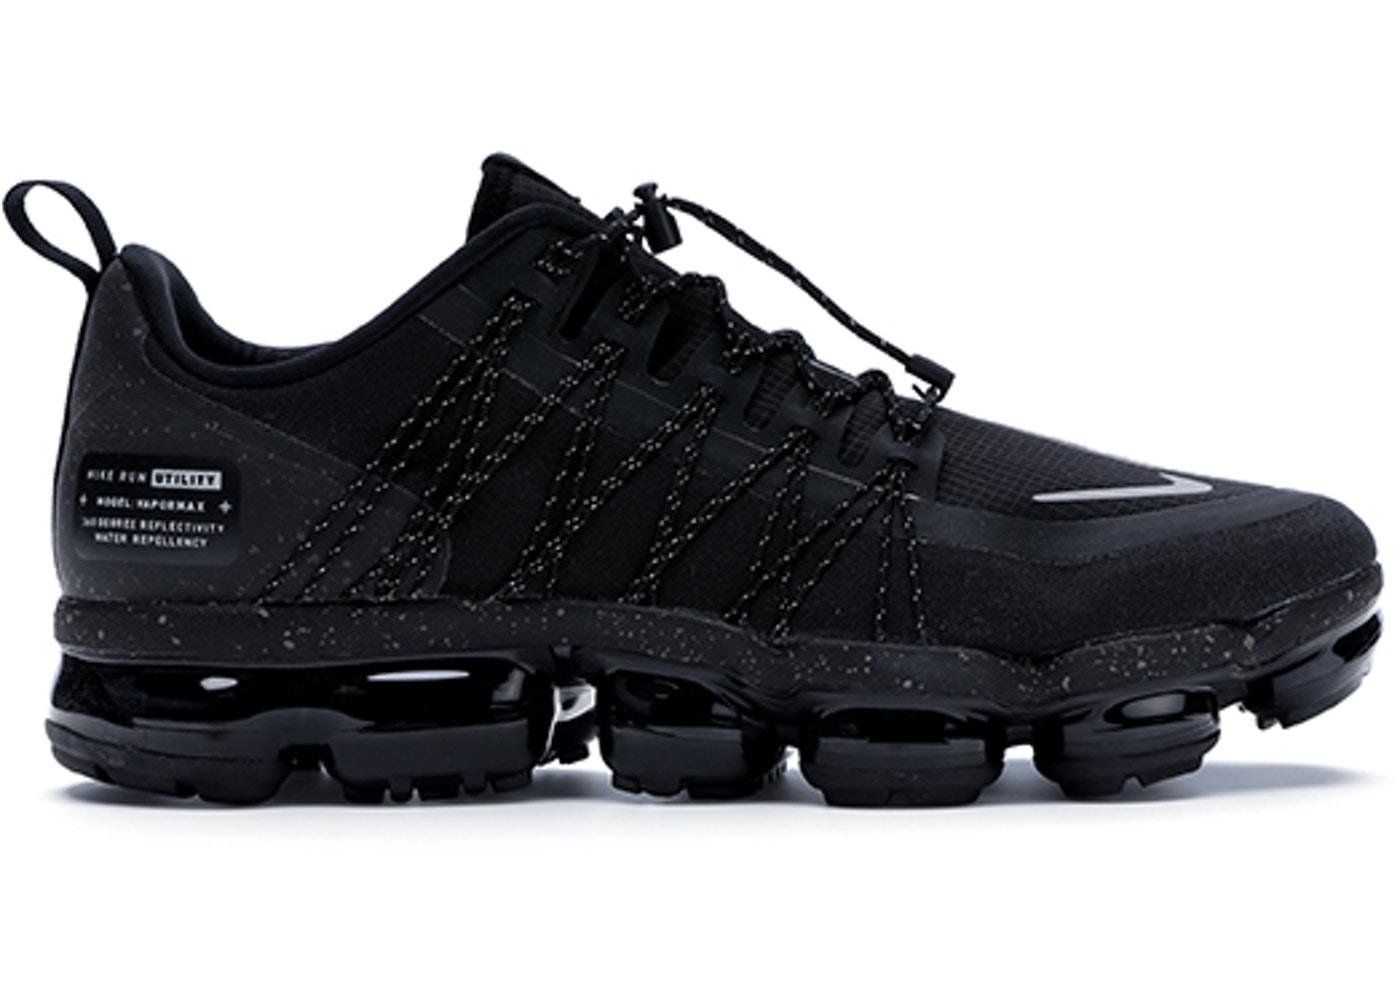 dec00d86b17 Air VaporMax Run Utility Black Reflect Silver - AQ8810-003